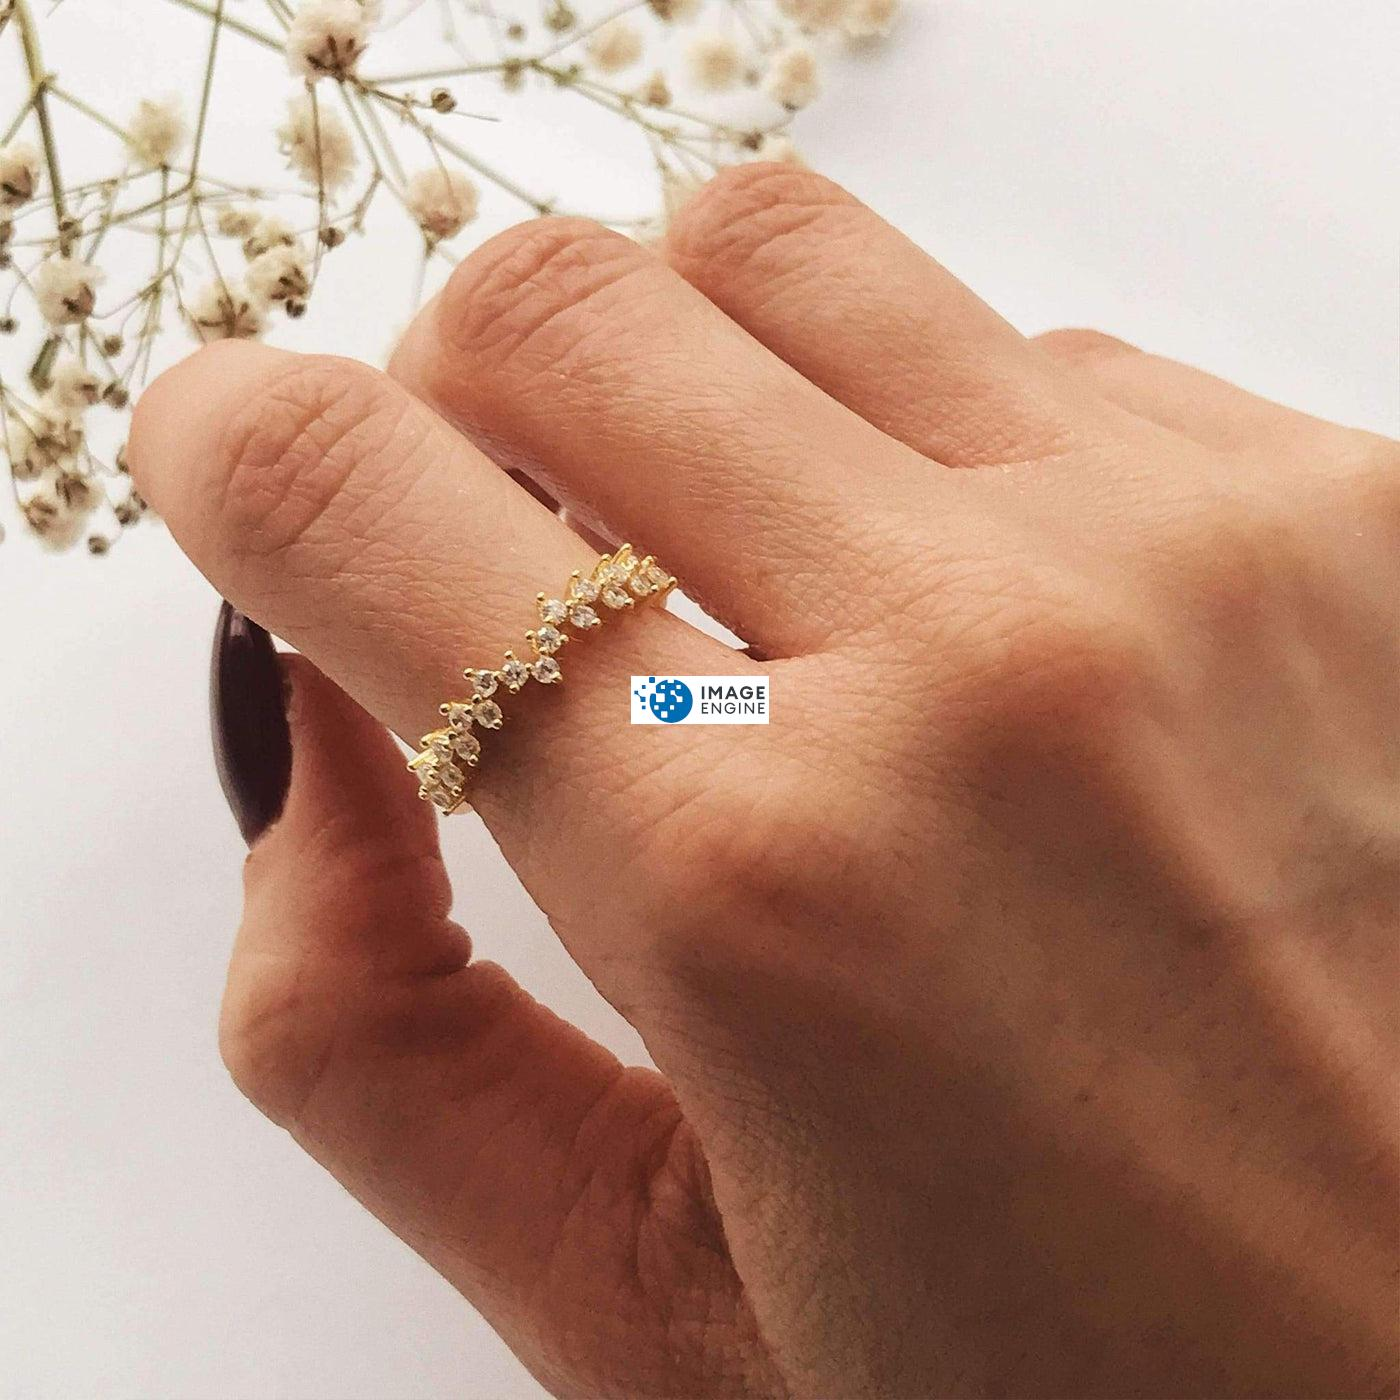 Esther Petite Cluster Ring - Wearing on Pointer Finger - 18K Yellow Gold Vermeil